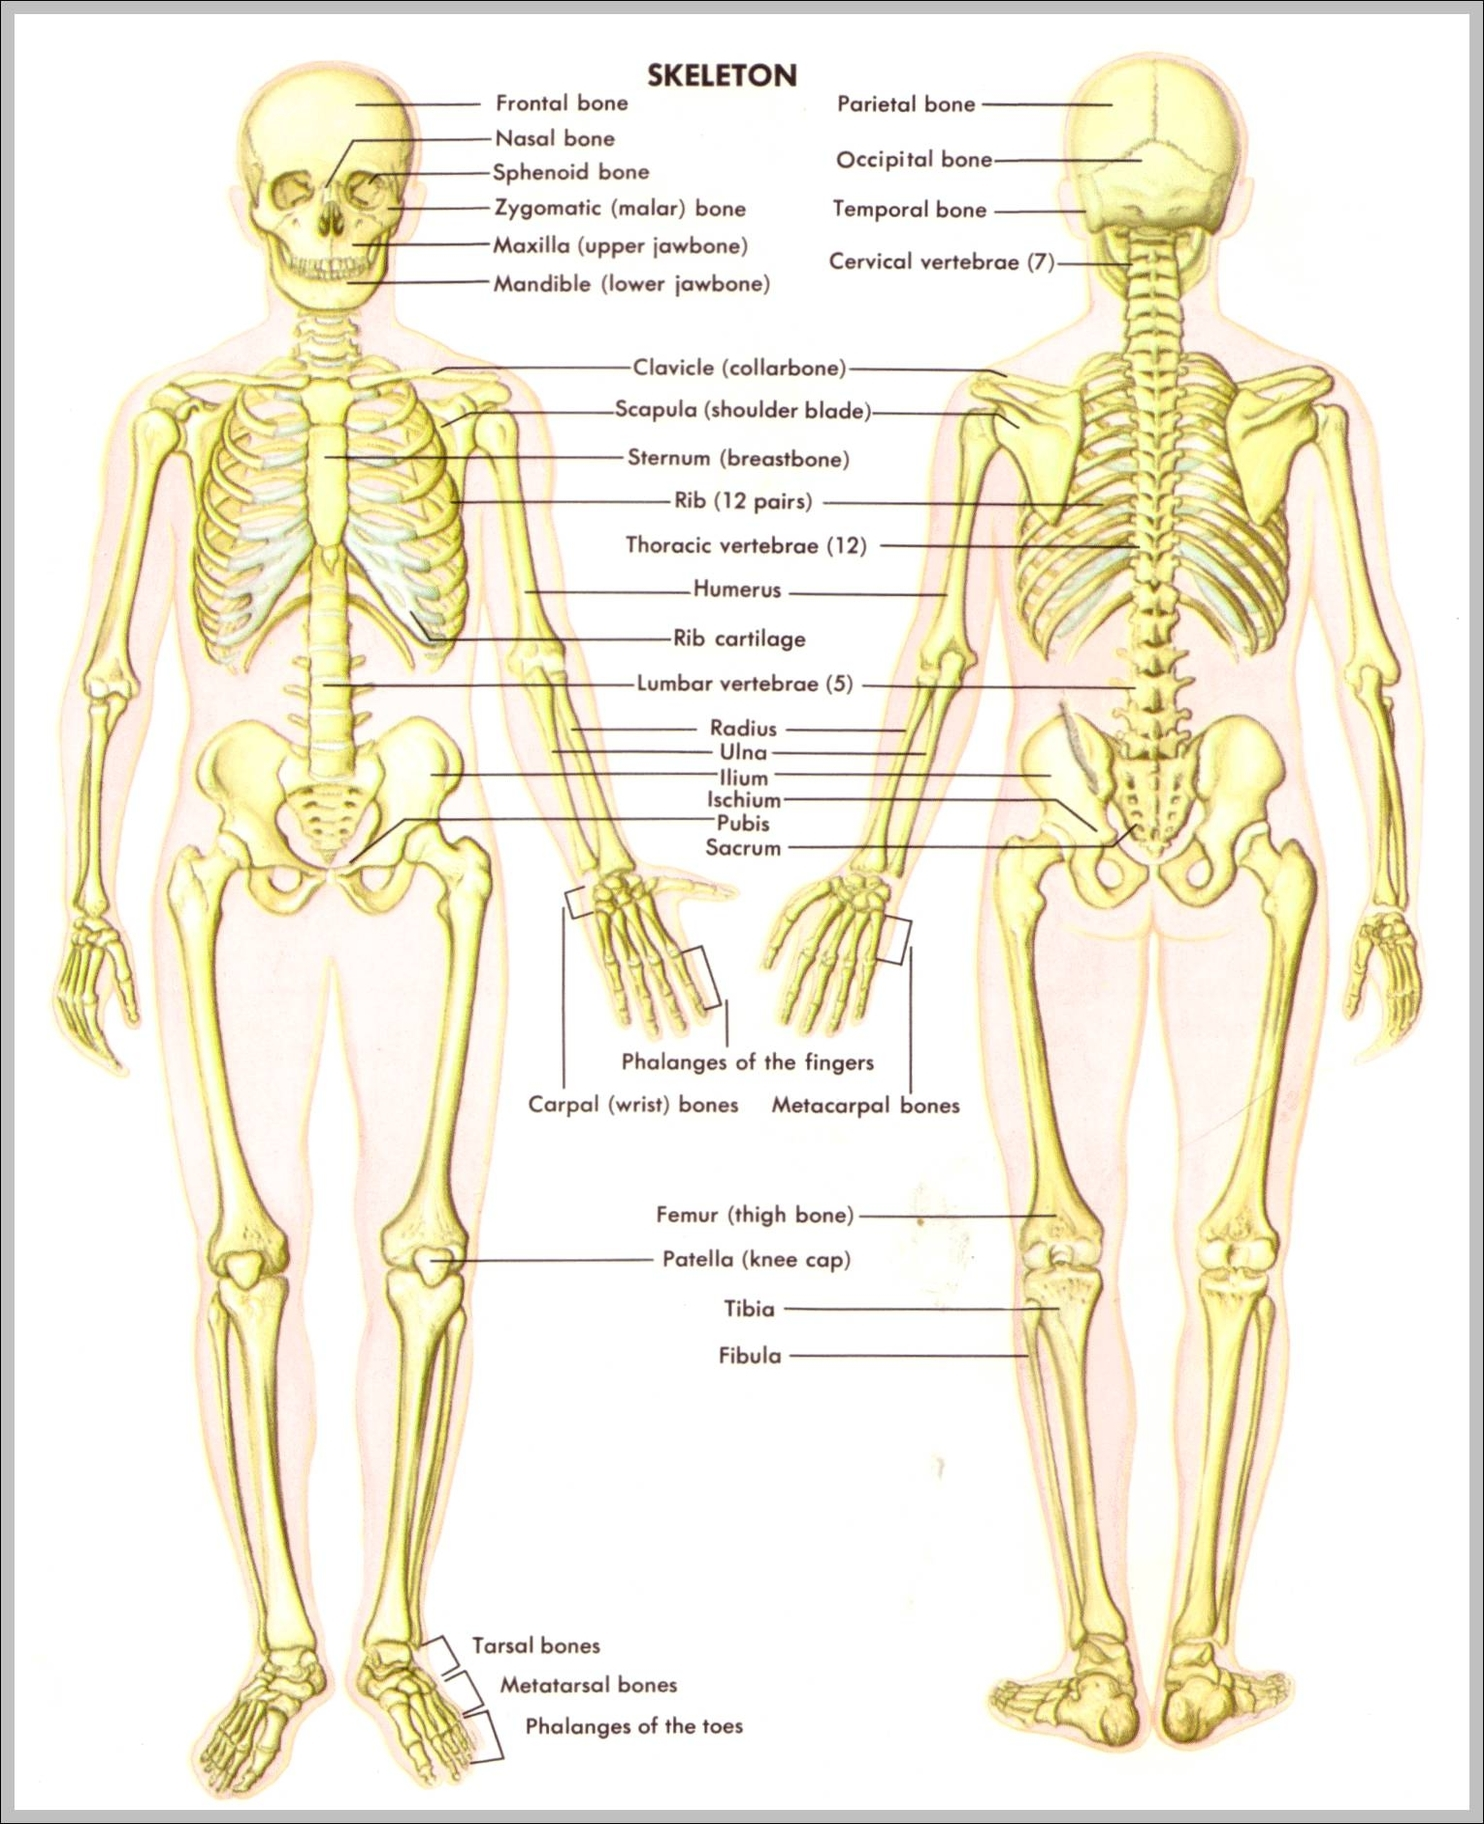 hight resolution of back skeletal anatomy diagram back skeletal anatomy chart human anatomy diagrams and charts explained this diagram depicts back skeletal anatomy with